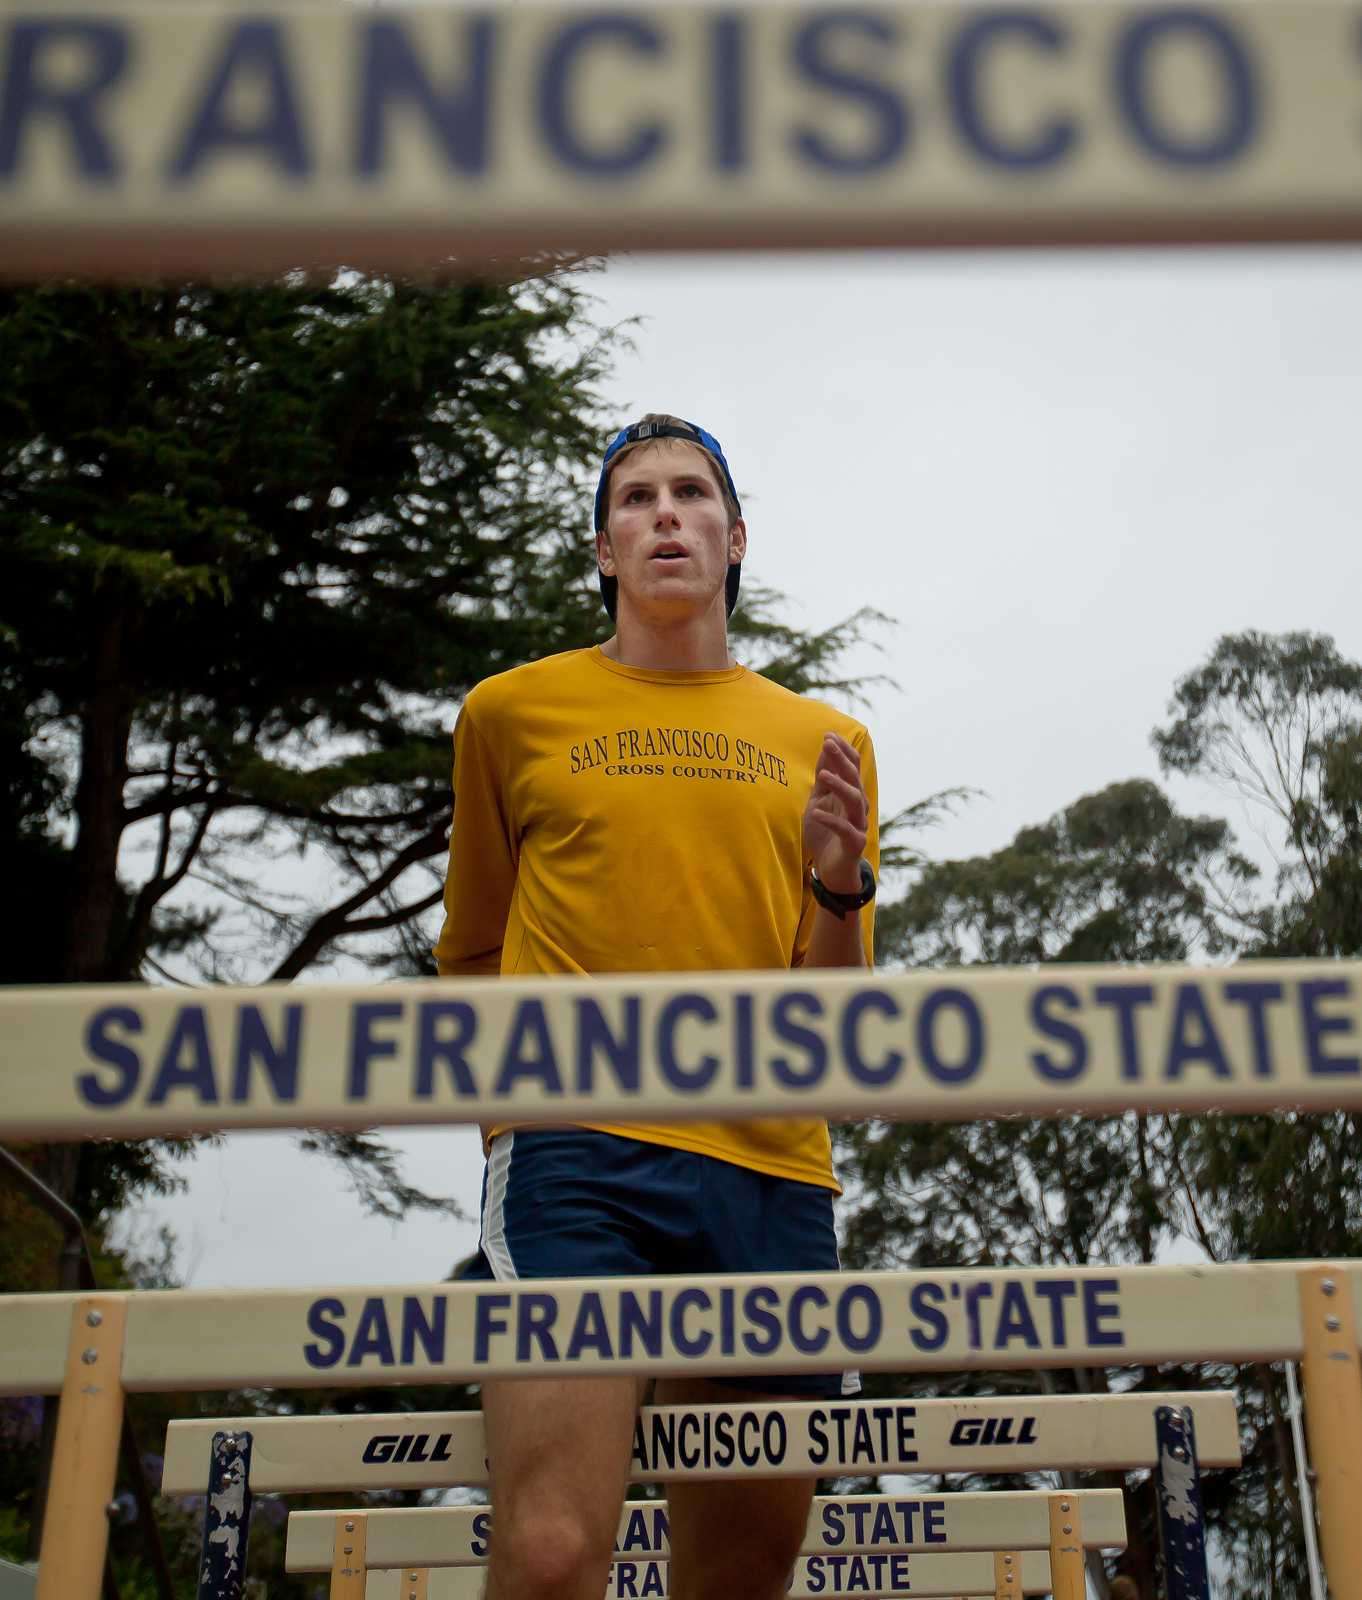 SF State cross country runner Drew Feldman runs drills with his team after a 10 mile run in Golden Gate Park on Thursday, Aug. 22, 2013. Photo by Dariel Medina / Xpress